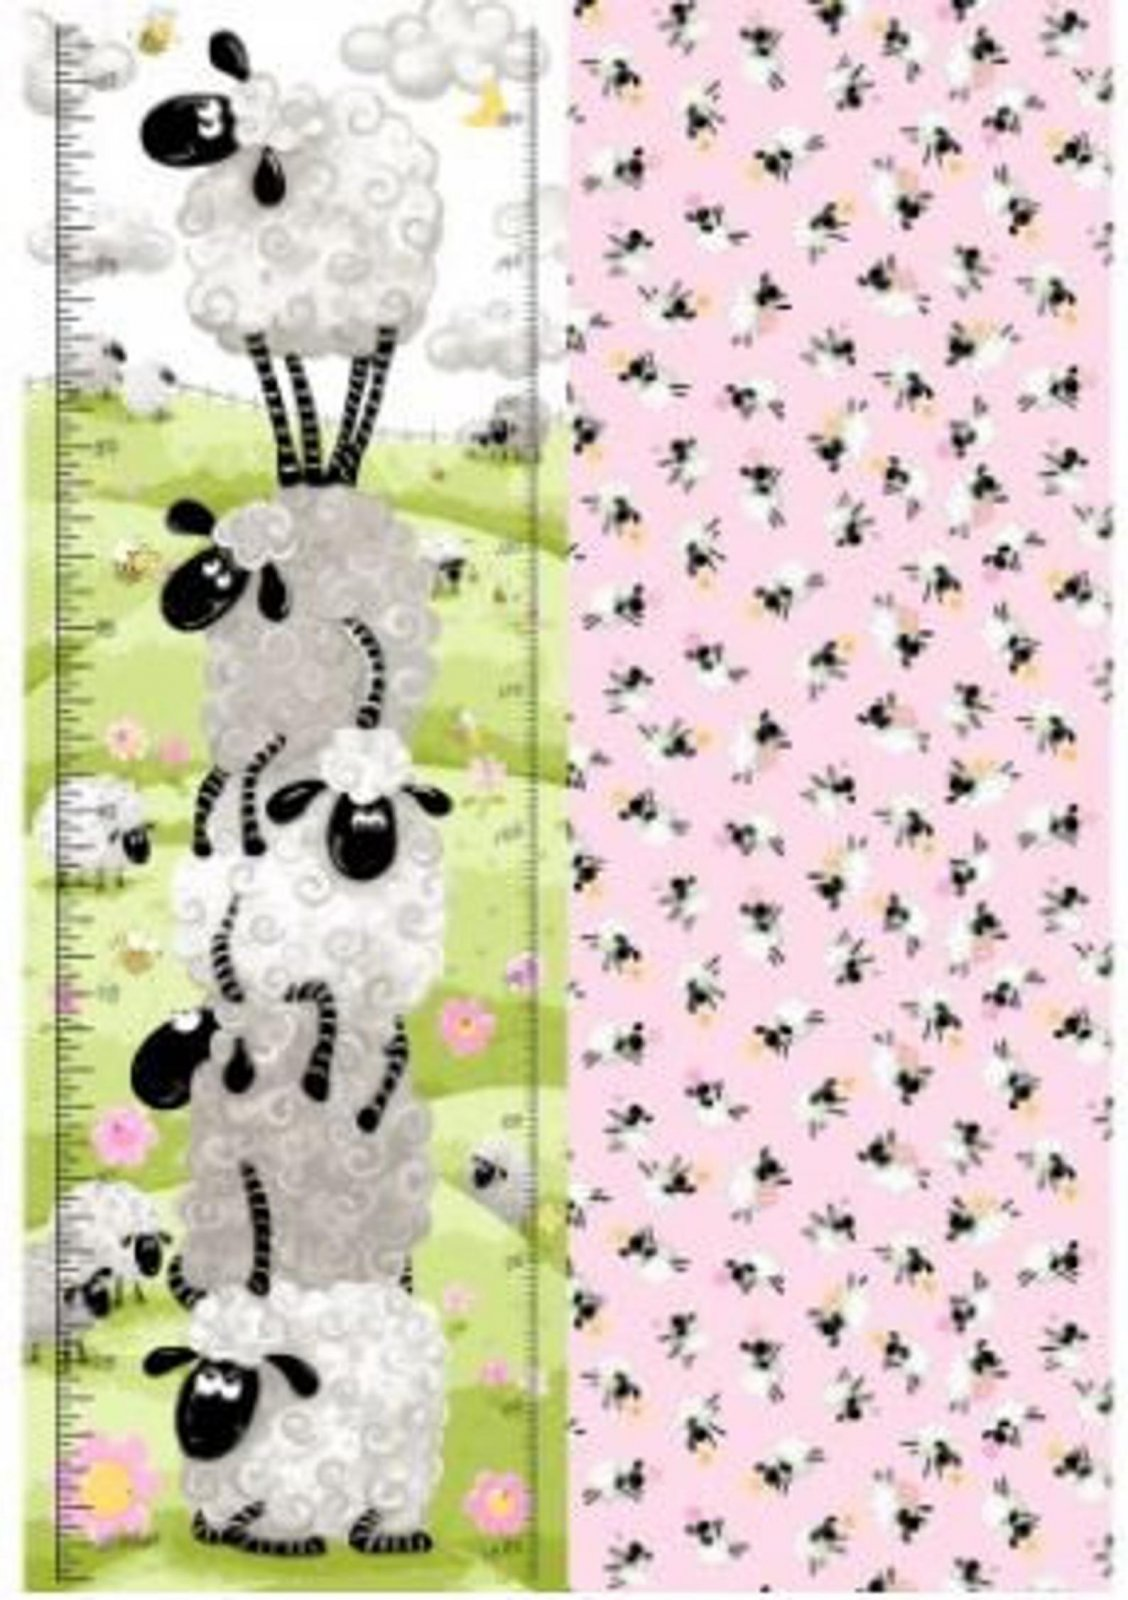 Lal the Lamb Growth Chart Panel  30 x 43 (Front and Back)